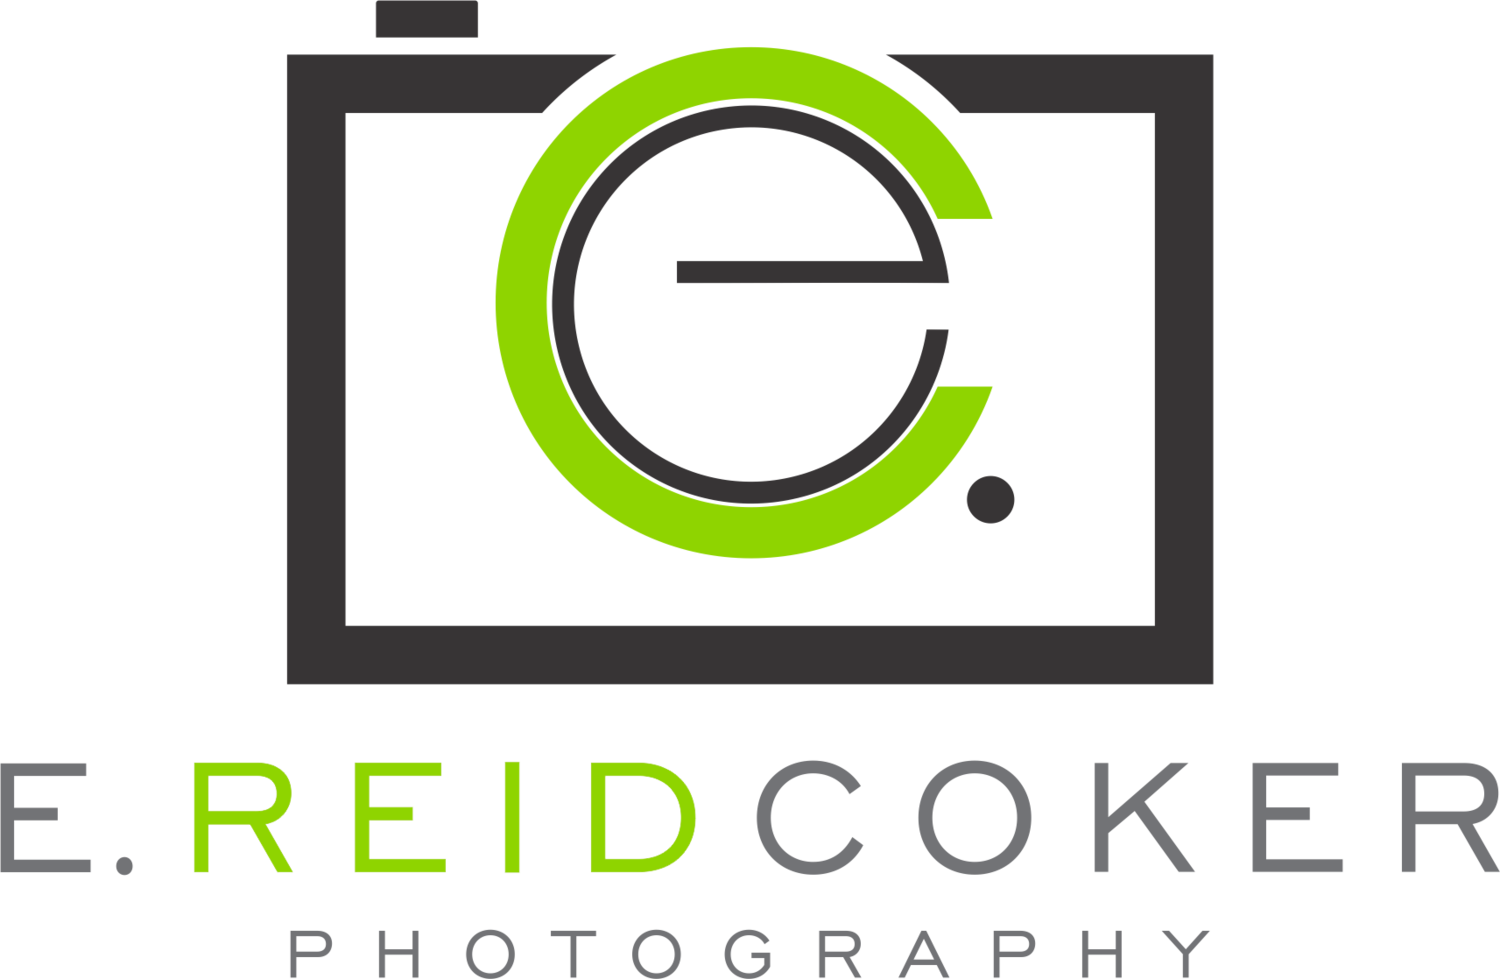 E. REID COKER - PHOTOGRAPHER